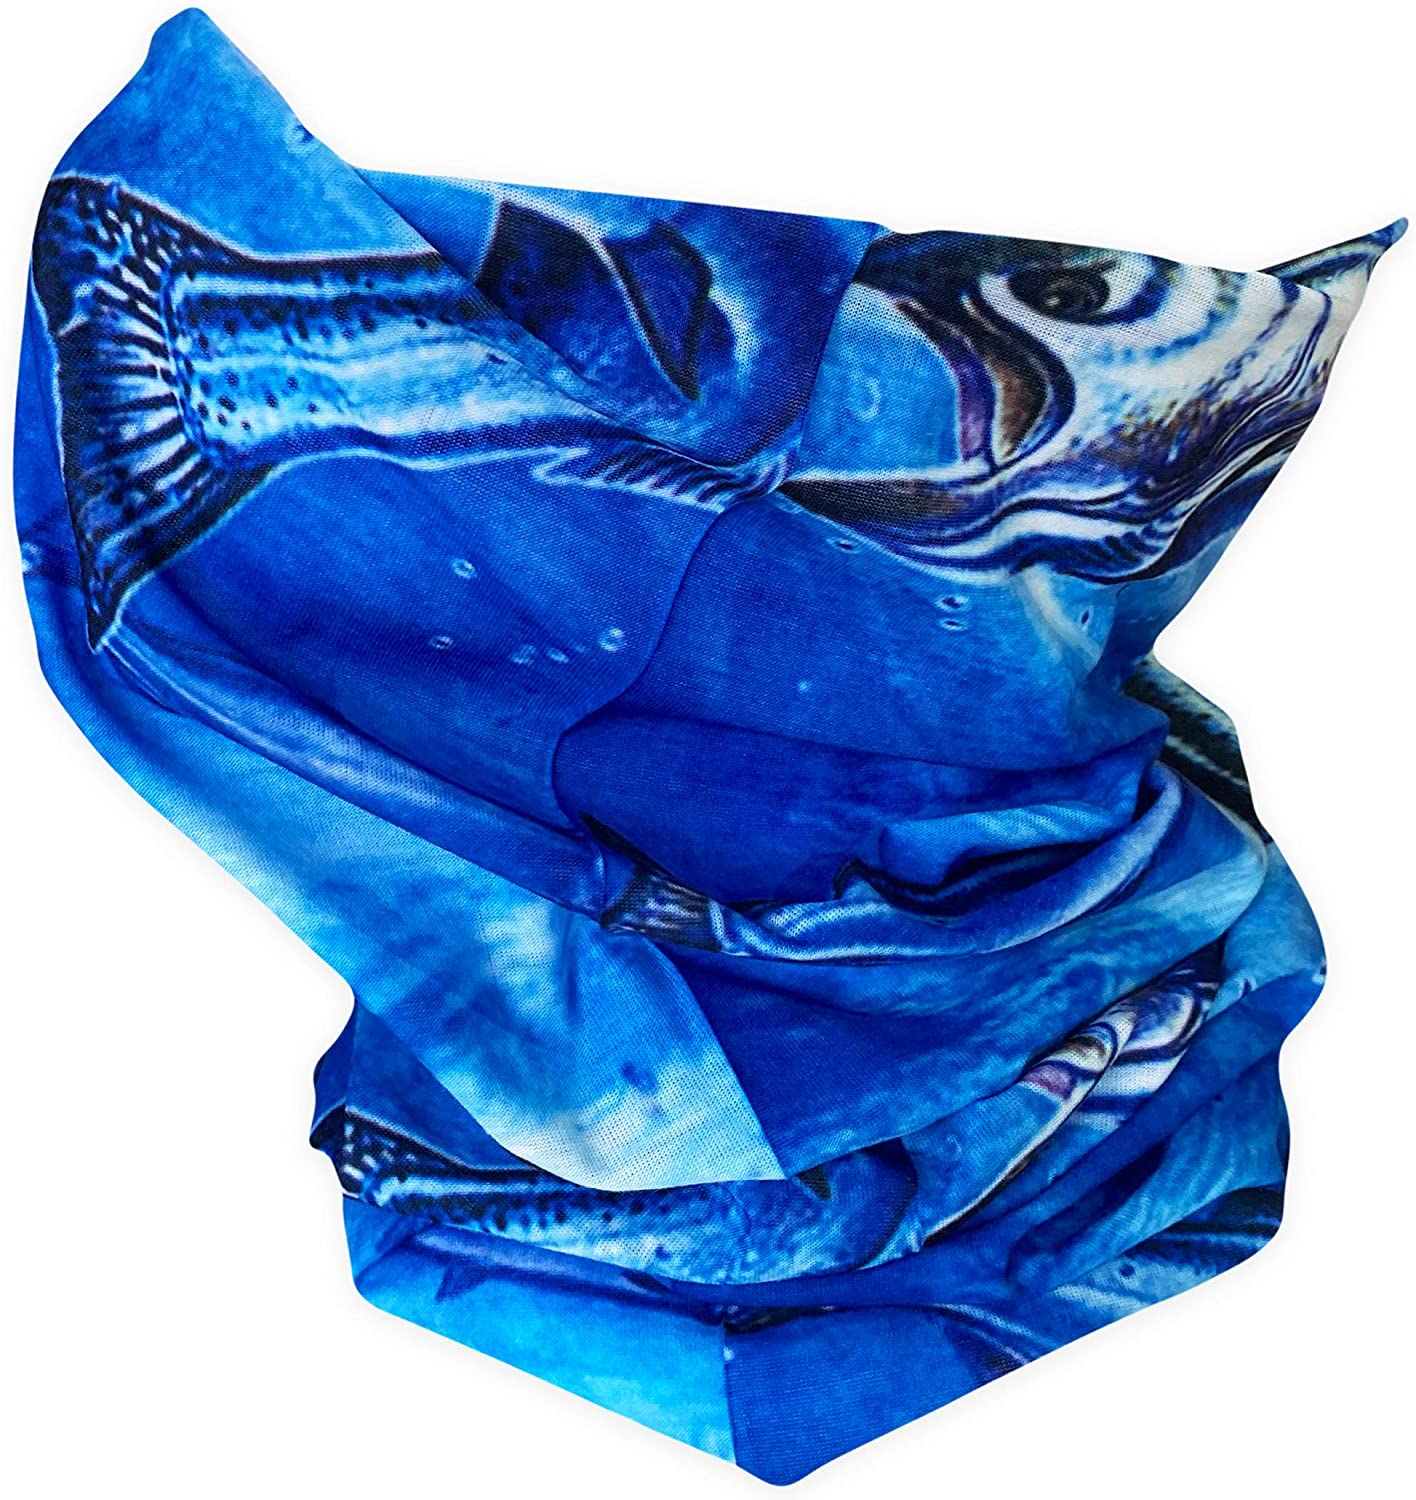 Cool Blue Fish Gaiter Mask for Men and Women - Multi-use breathable Bandana Balaclava Face Cover